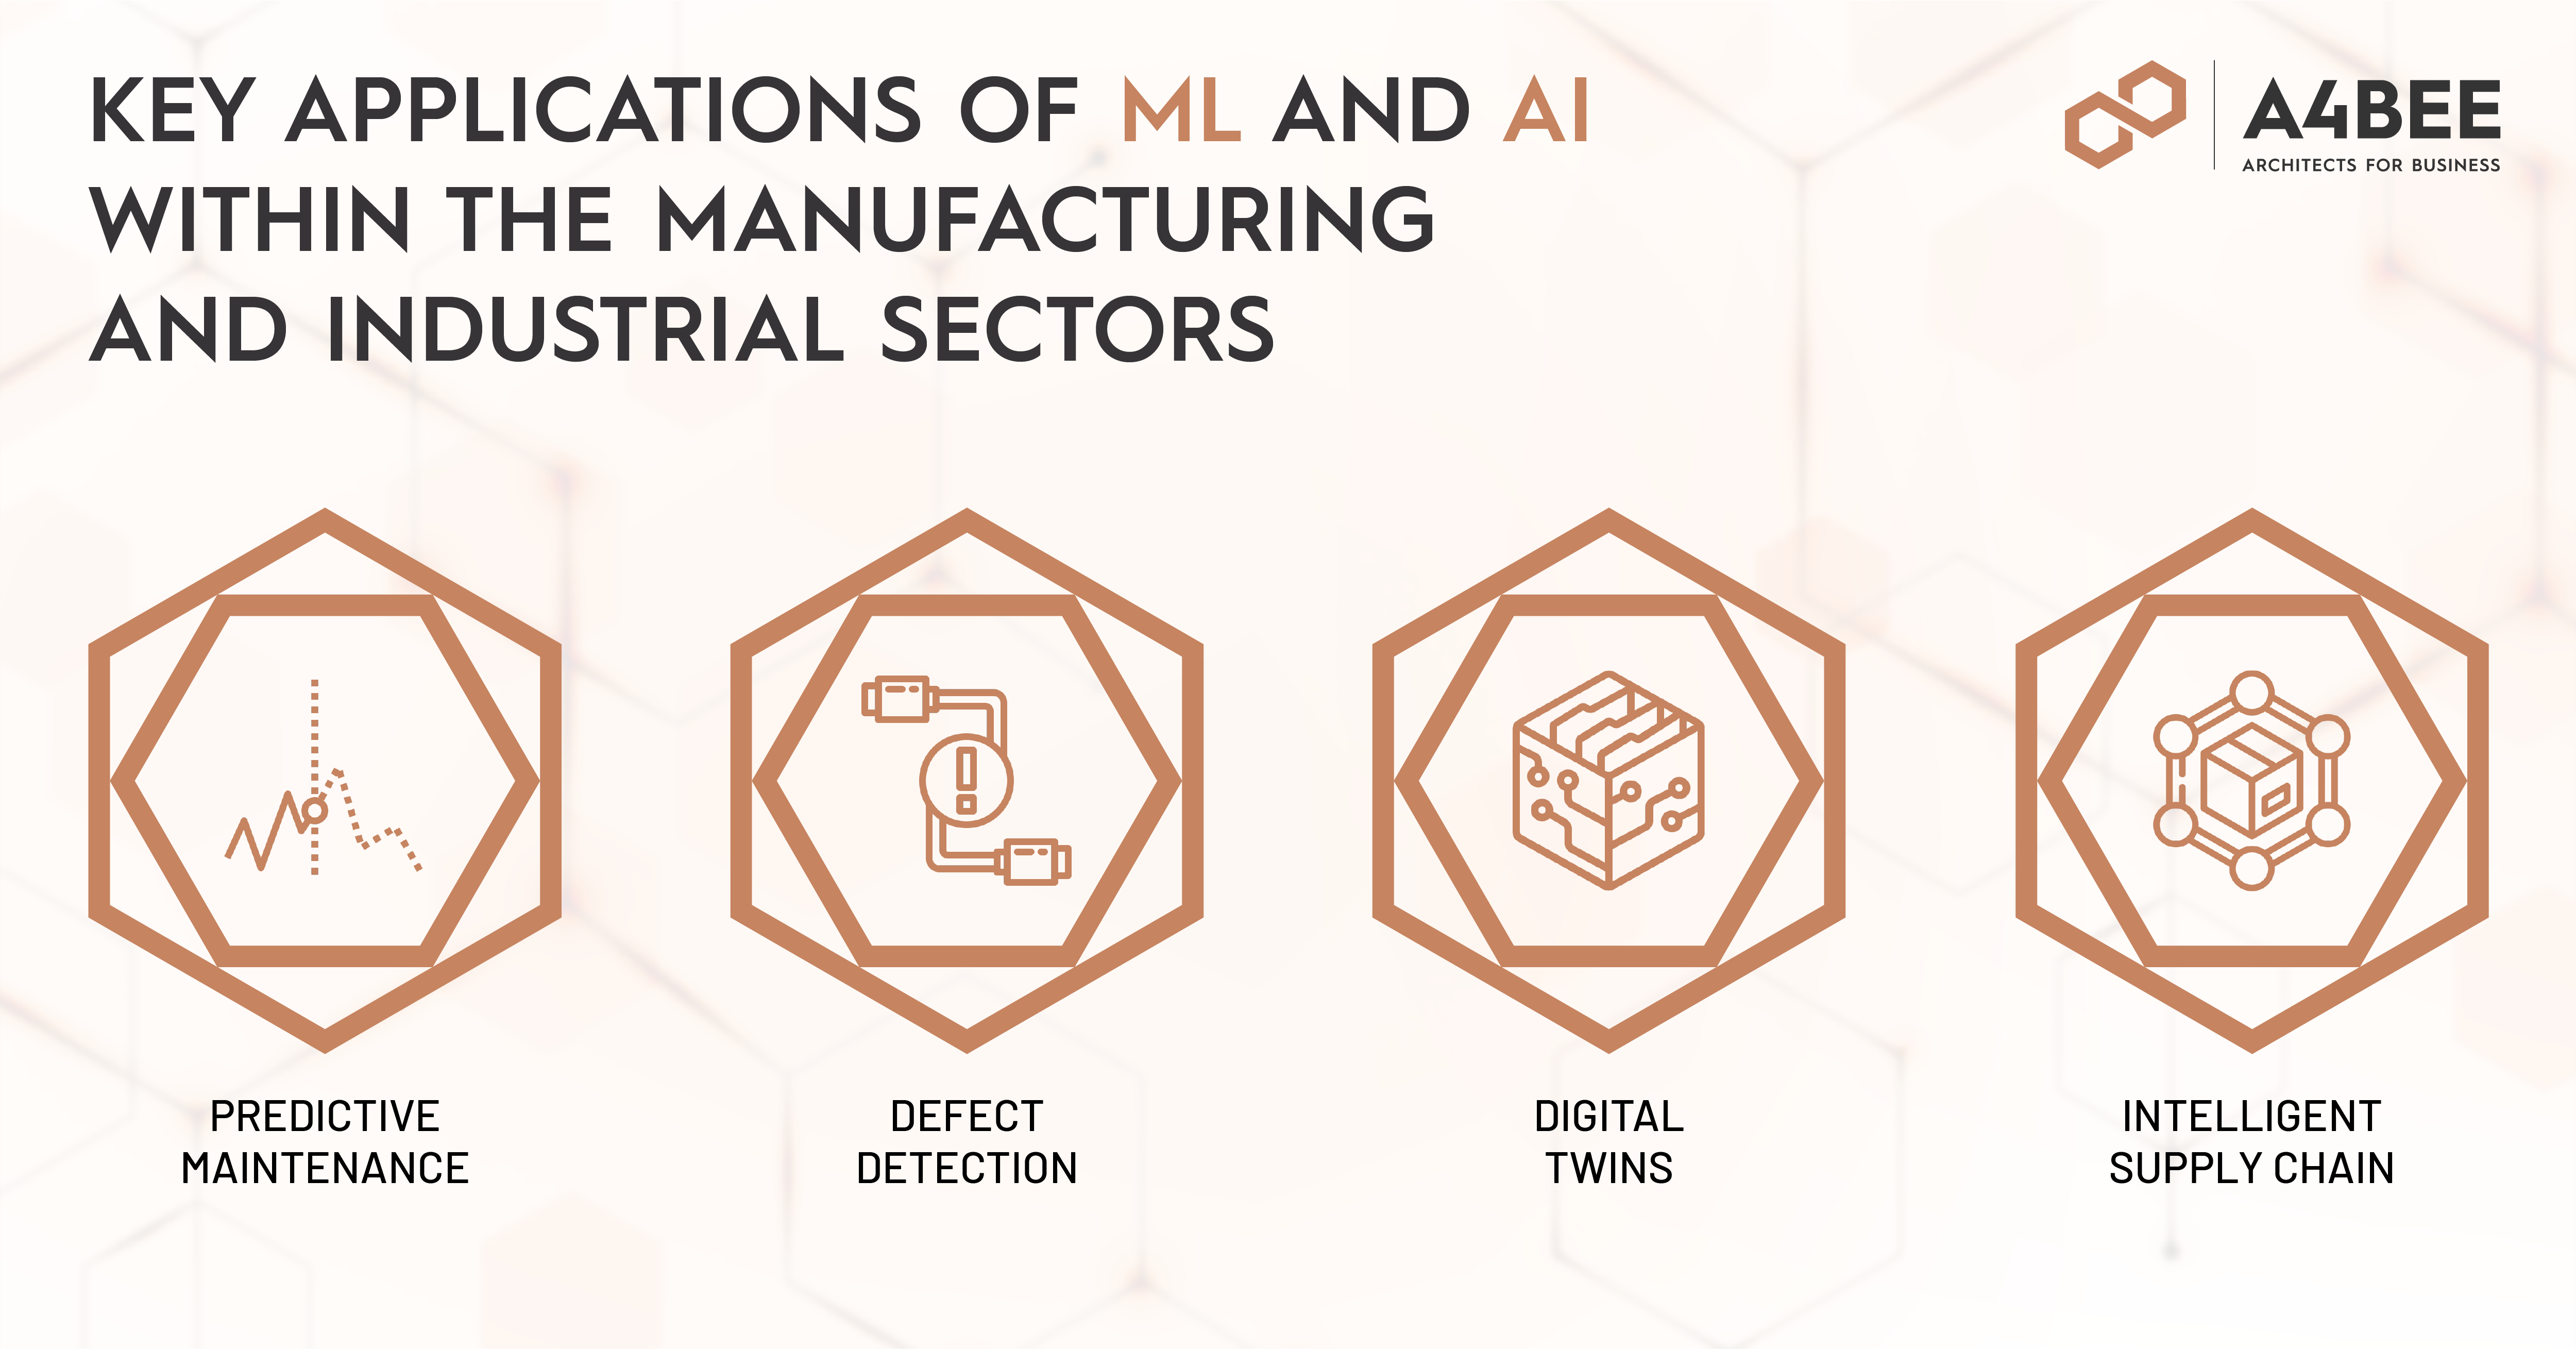 Applications of AI and ML within the manufacturing and industrial sectors